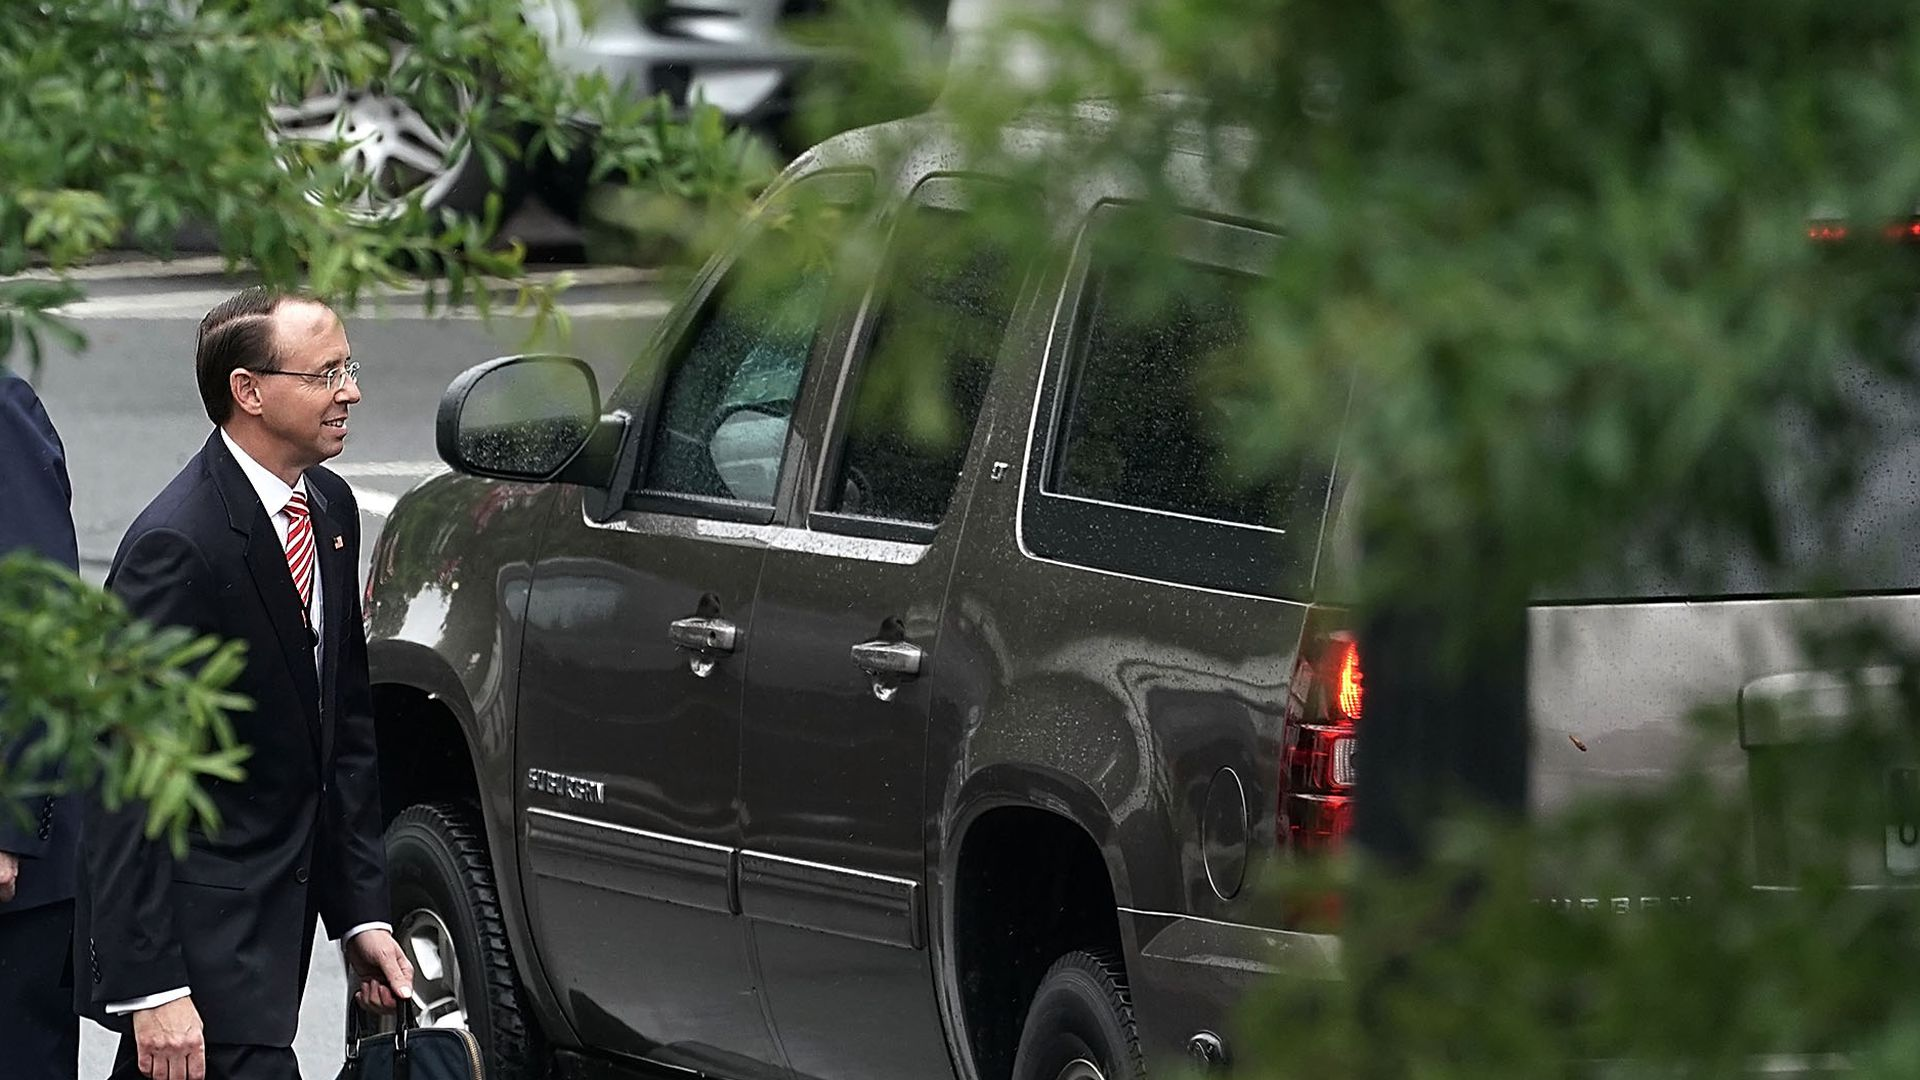 Rod Rosenstein walking near a car, with a tree shrouding the picture